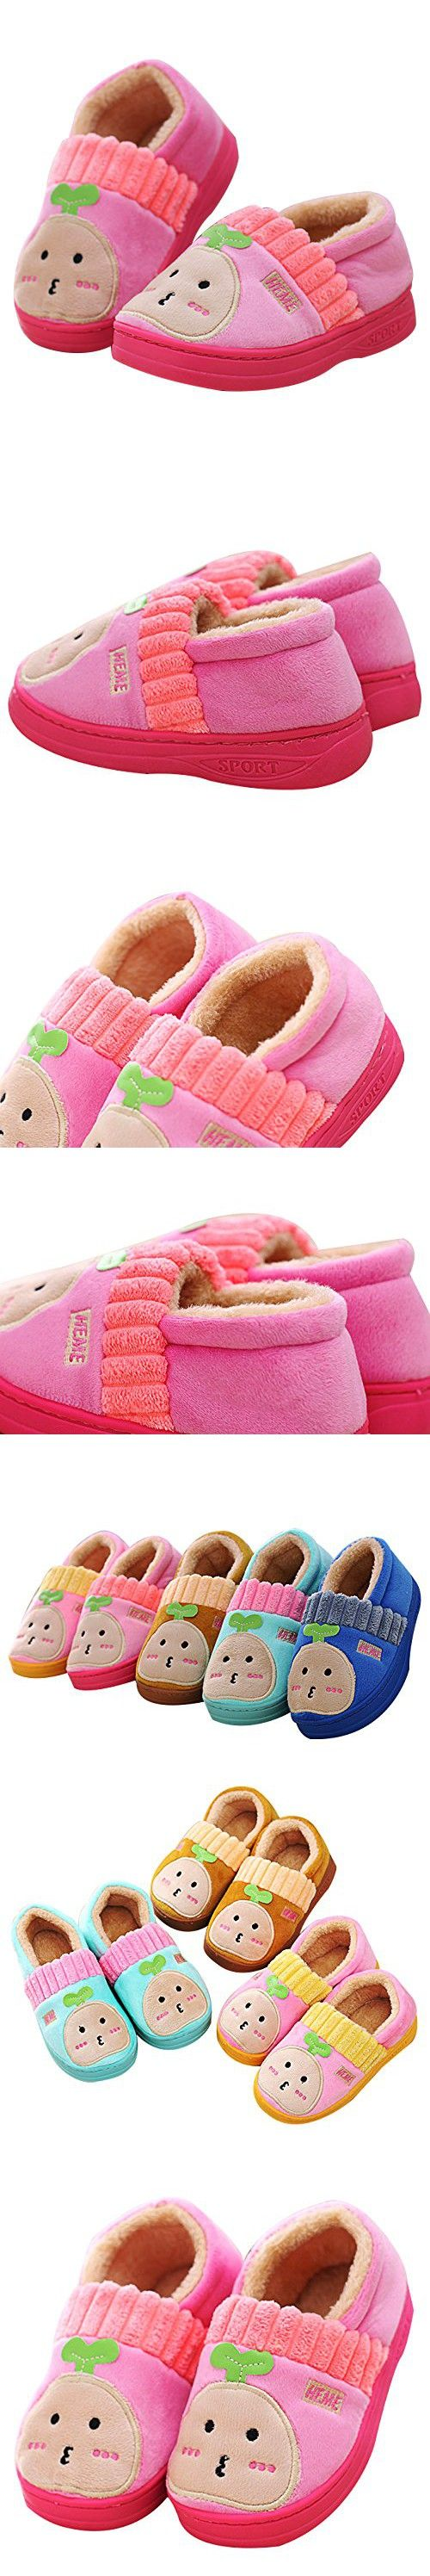 Kosbon Baby Girls Toddler Soft-sole Anti-slip Waterproof Leater Slippers Boots , Winter Thickened Plush Princess Style Shoes Boots with Bocknot , Best Present Gift for Kids Children (17CM, Pink)